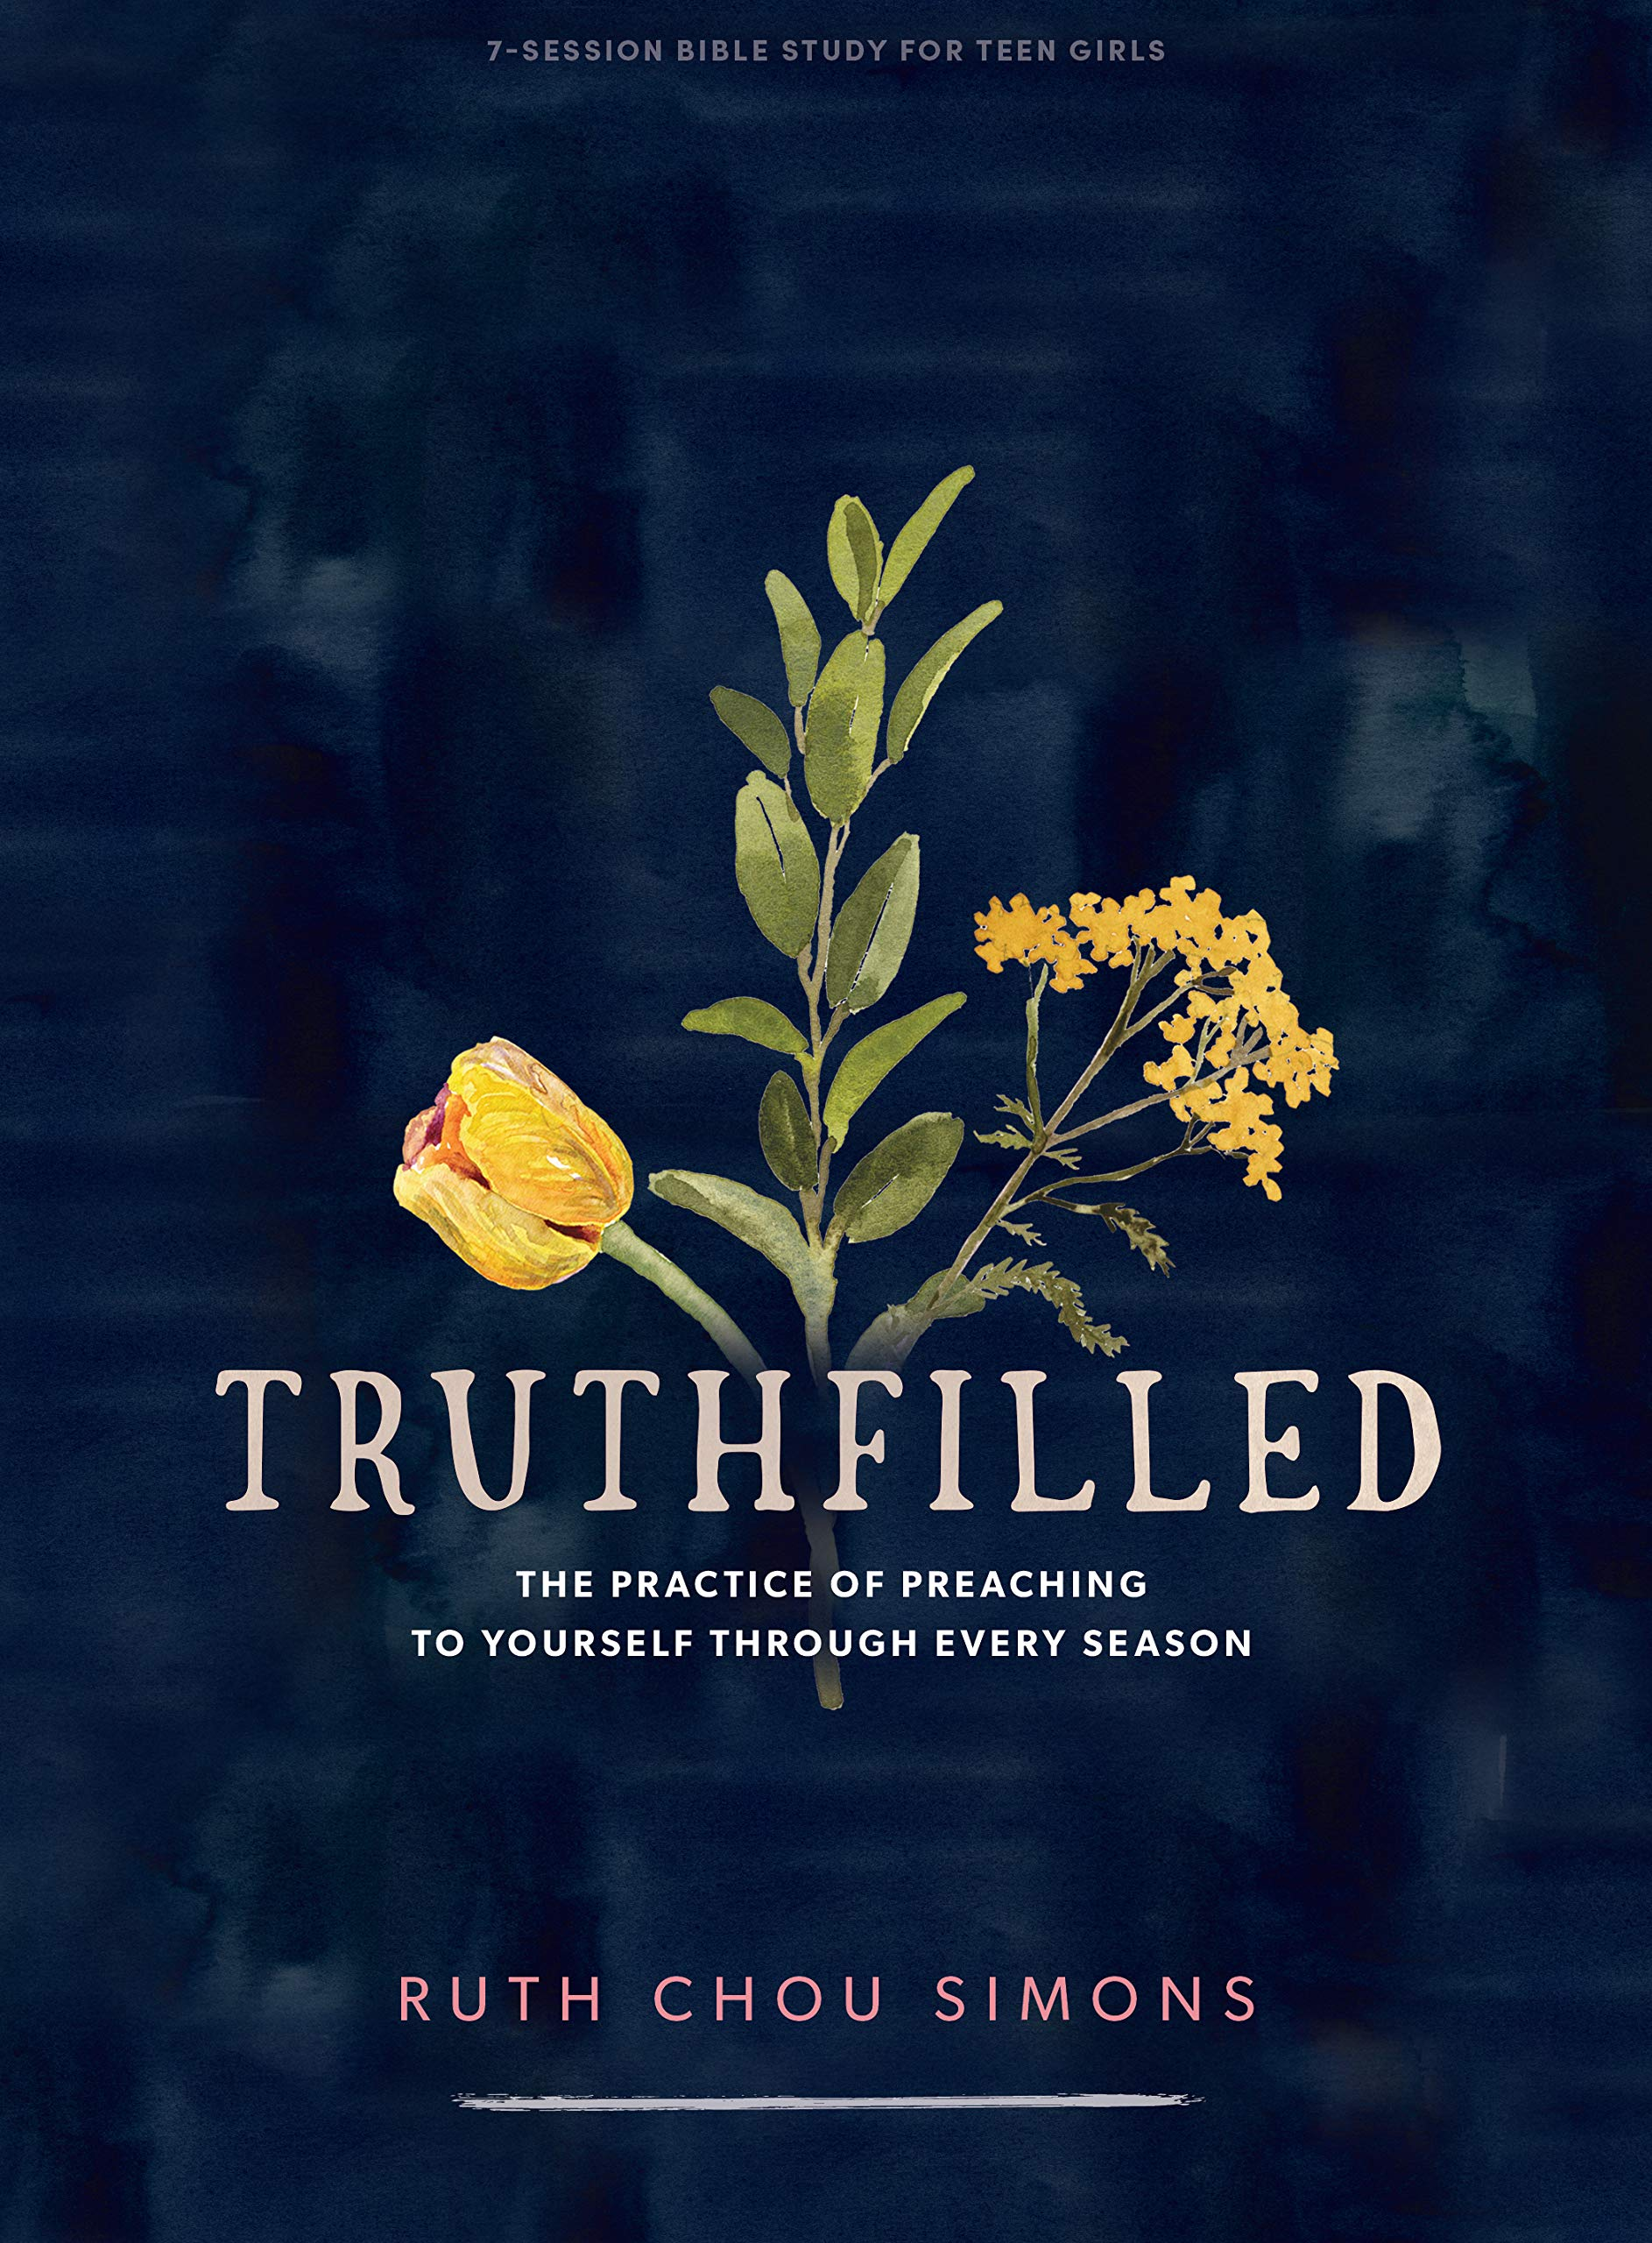 TruthFilled - Teen Girls' Bible Study Book: The Practice of Preaching to Yourself  Through Every Season: Simons, Ruth Chou: 9781087750538: Amazon.com: Books